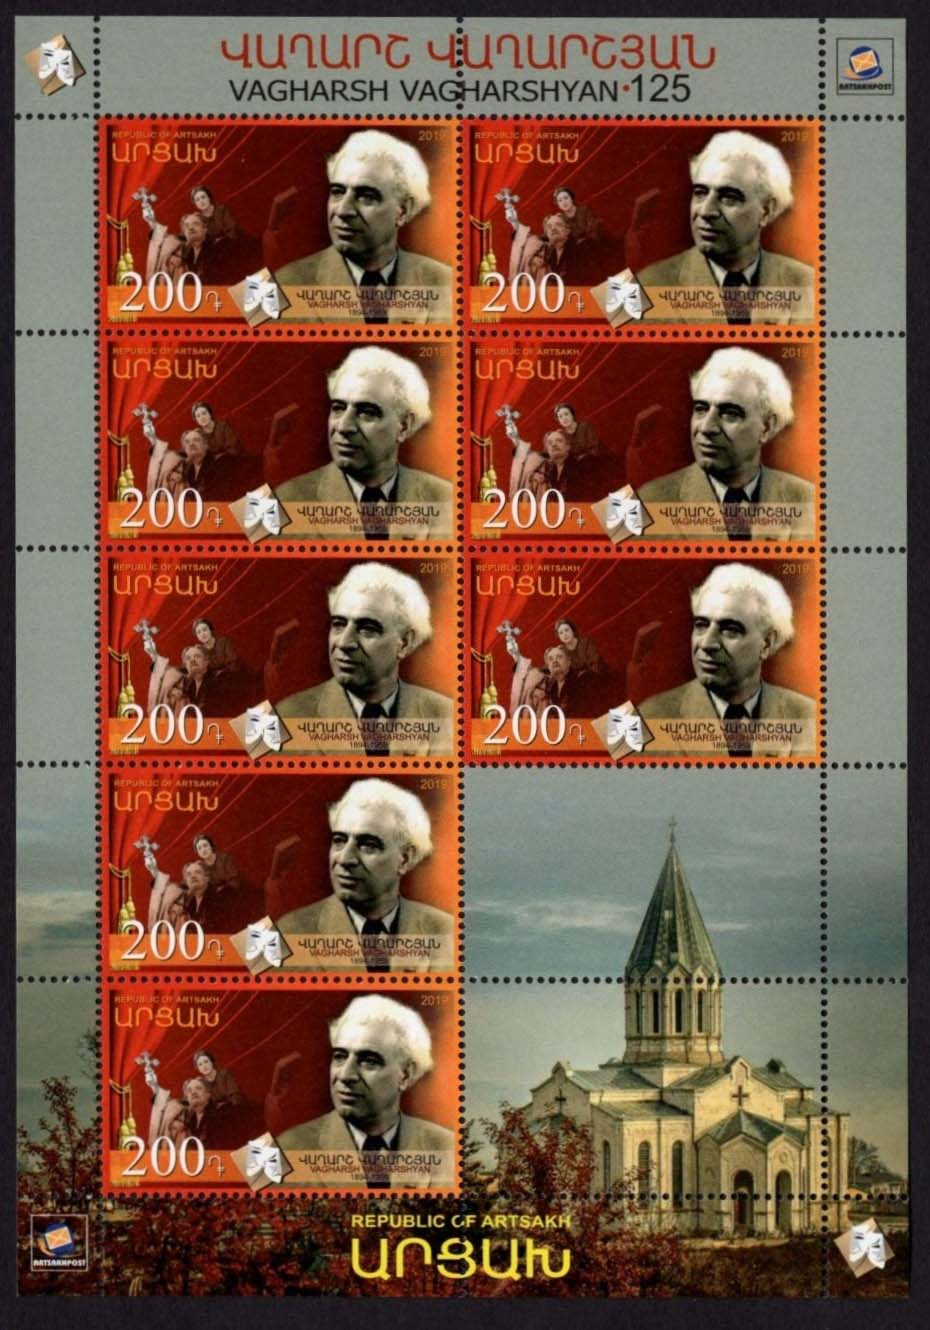 "<Font 2-189>Artsakh #189, Vagharsh Vagharshyan, 125th Birth Anniversary, Sheet of 8 plus two labels <br><a href=""/images/KA-189-Sheet.jpg"">   <font color=green><b>View the image</b></a></font>"